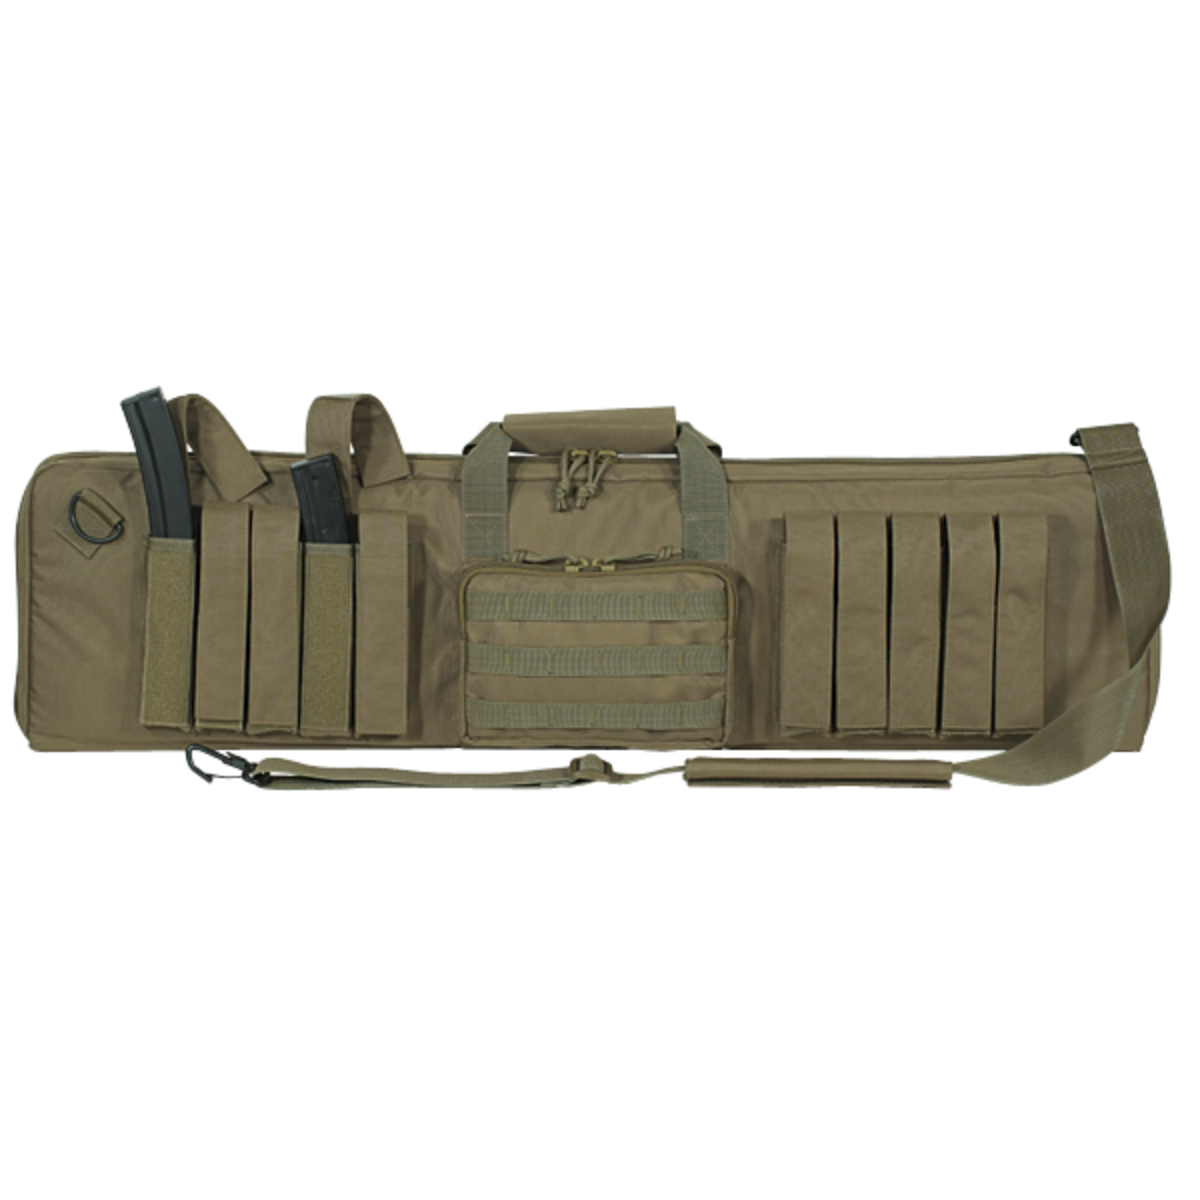 Voodoo Tactical 15-0114 MP5 Enlarged 37-Inch Subgun Padded Weapons Case, Tan at Sears.com